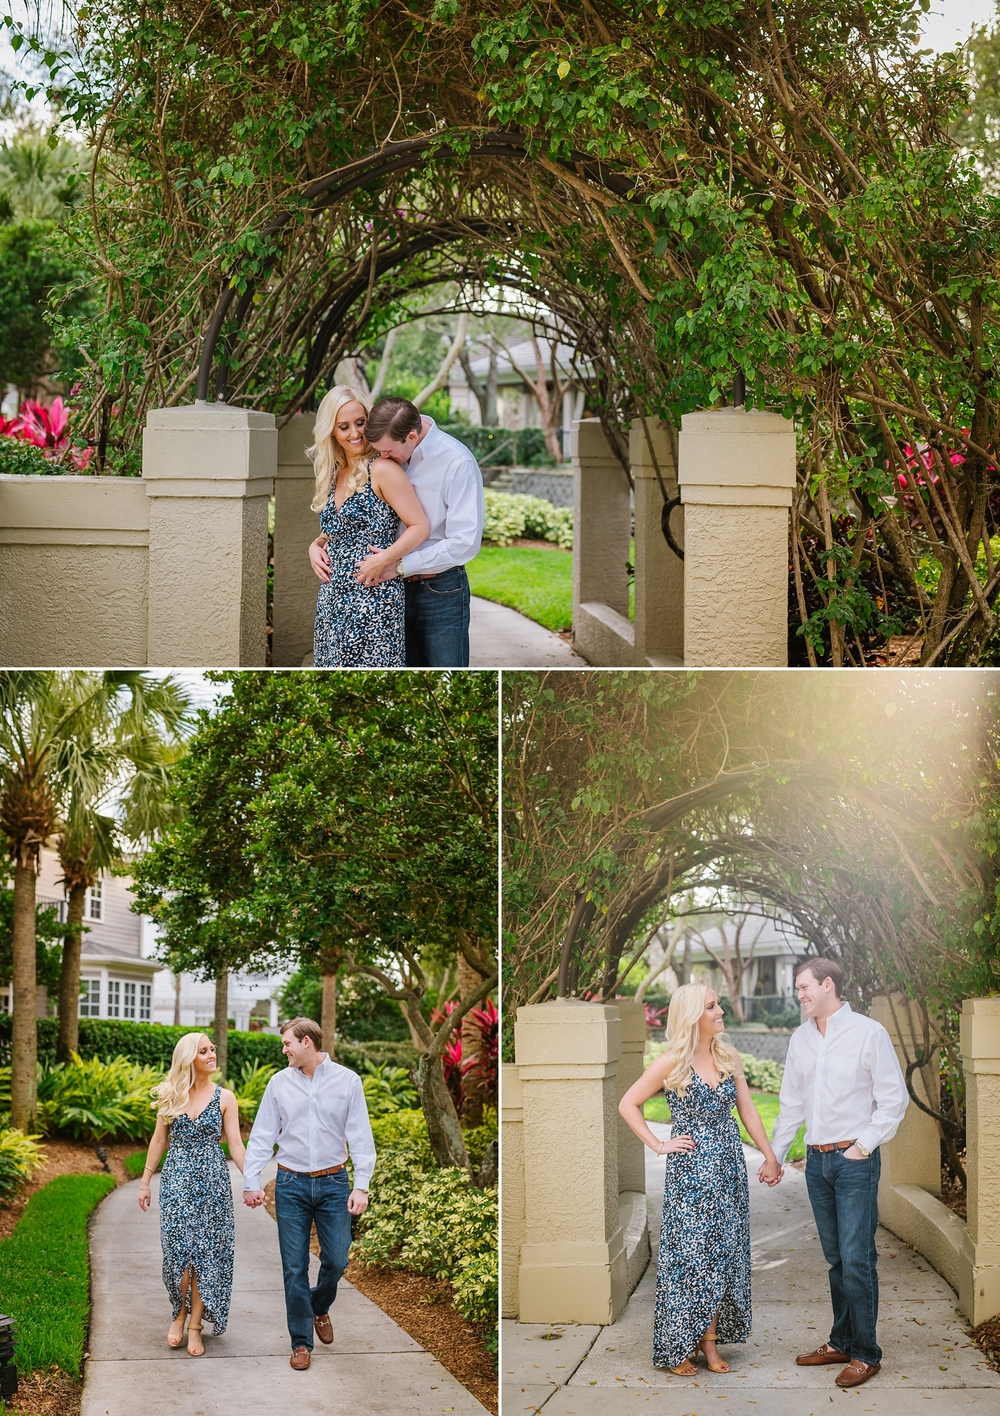 romantic-stylish-elegant-upscale-engagement-photography-ashlee-hamon-tampa_0001.jpg